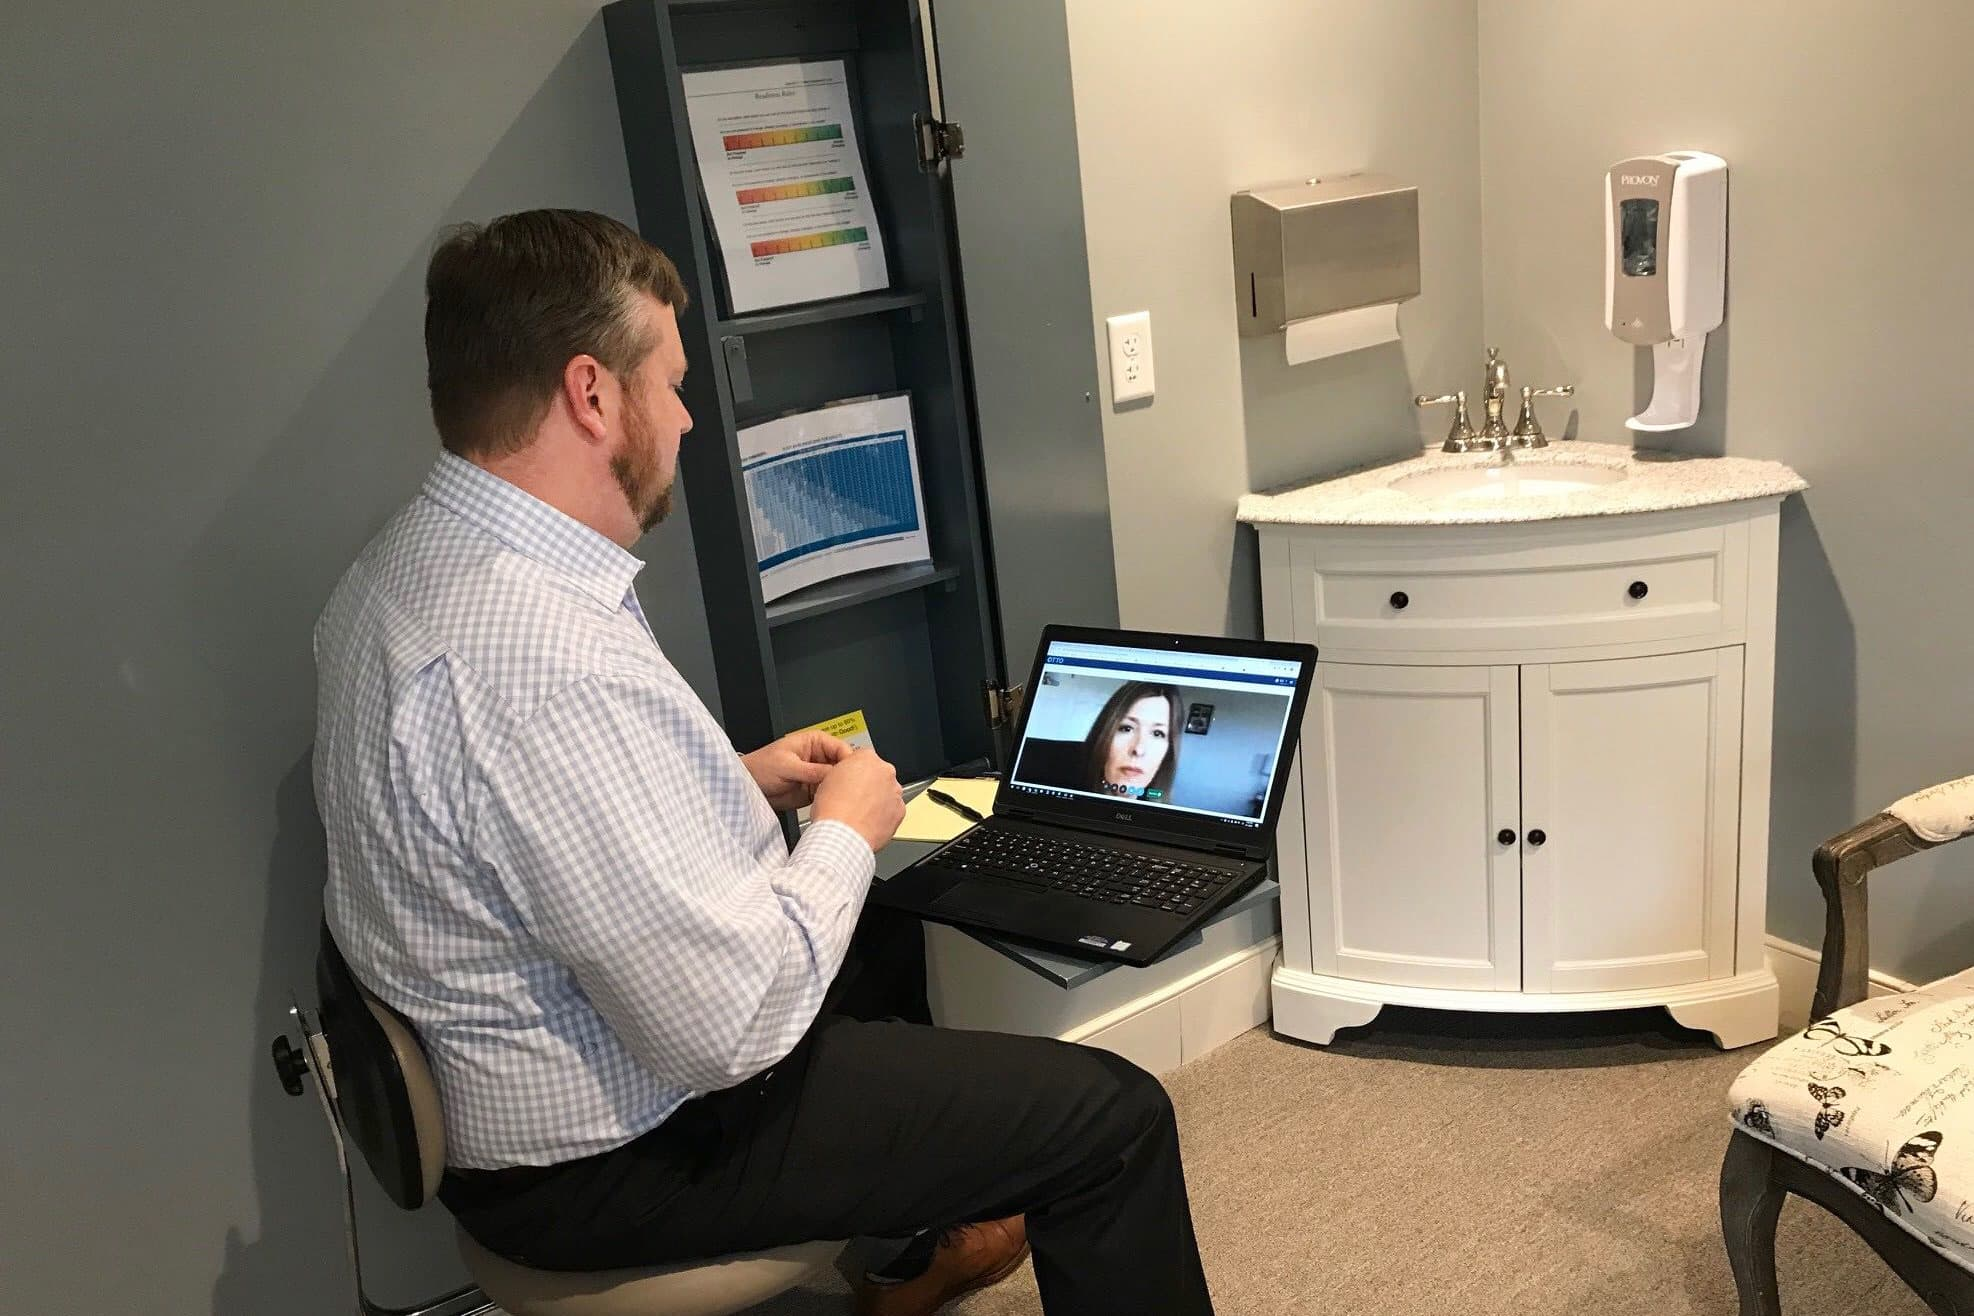 Telehealth visits could top 1 billion in 2020 amid the coronavirus crisis